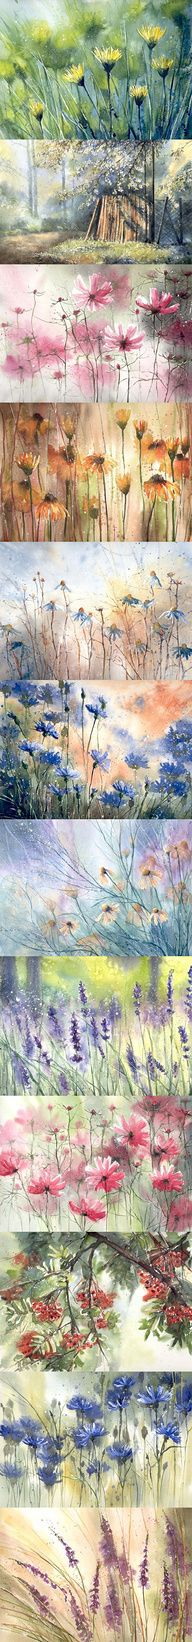 many pictures of flowers in watercolor